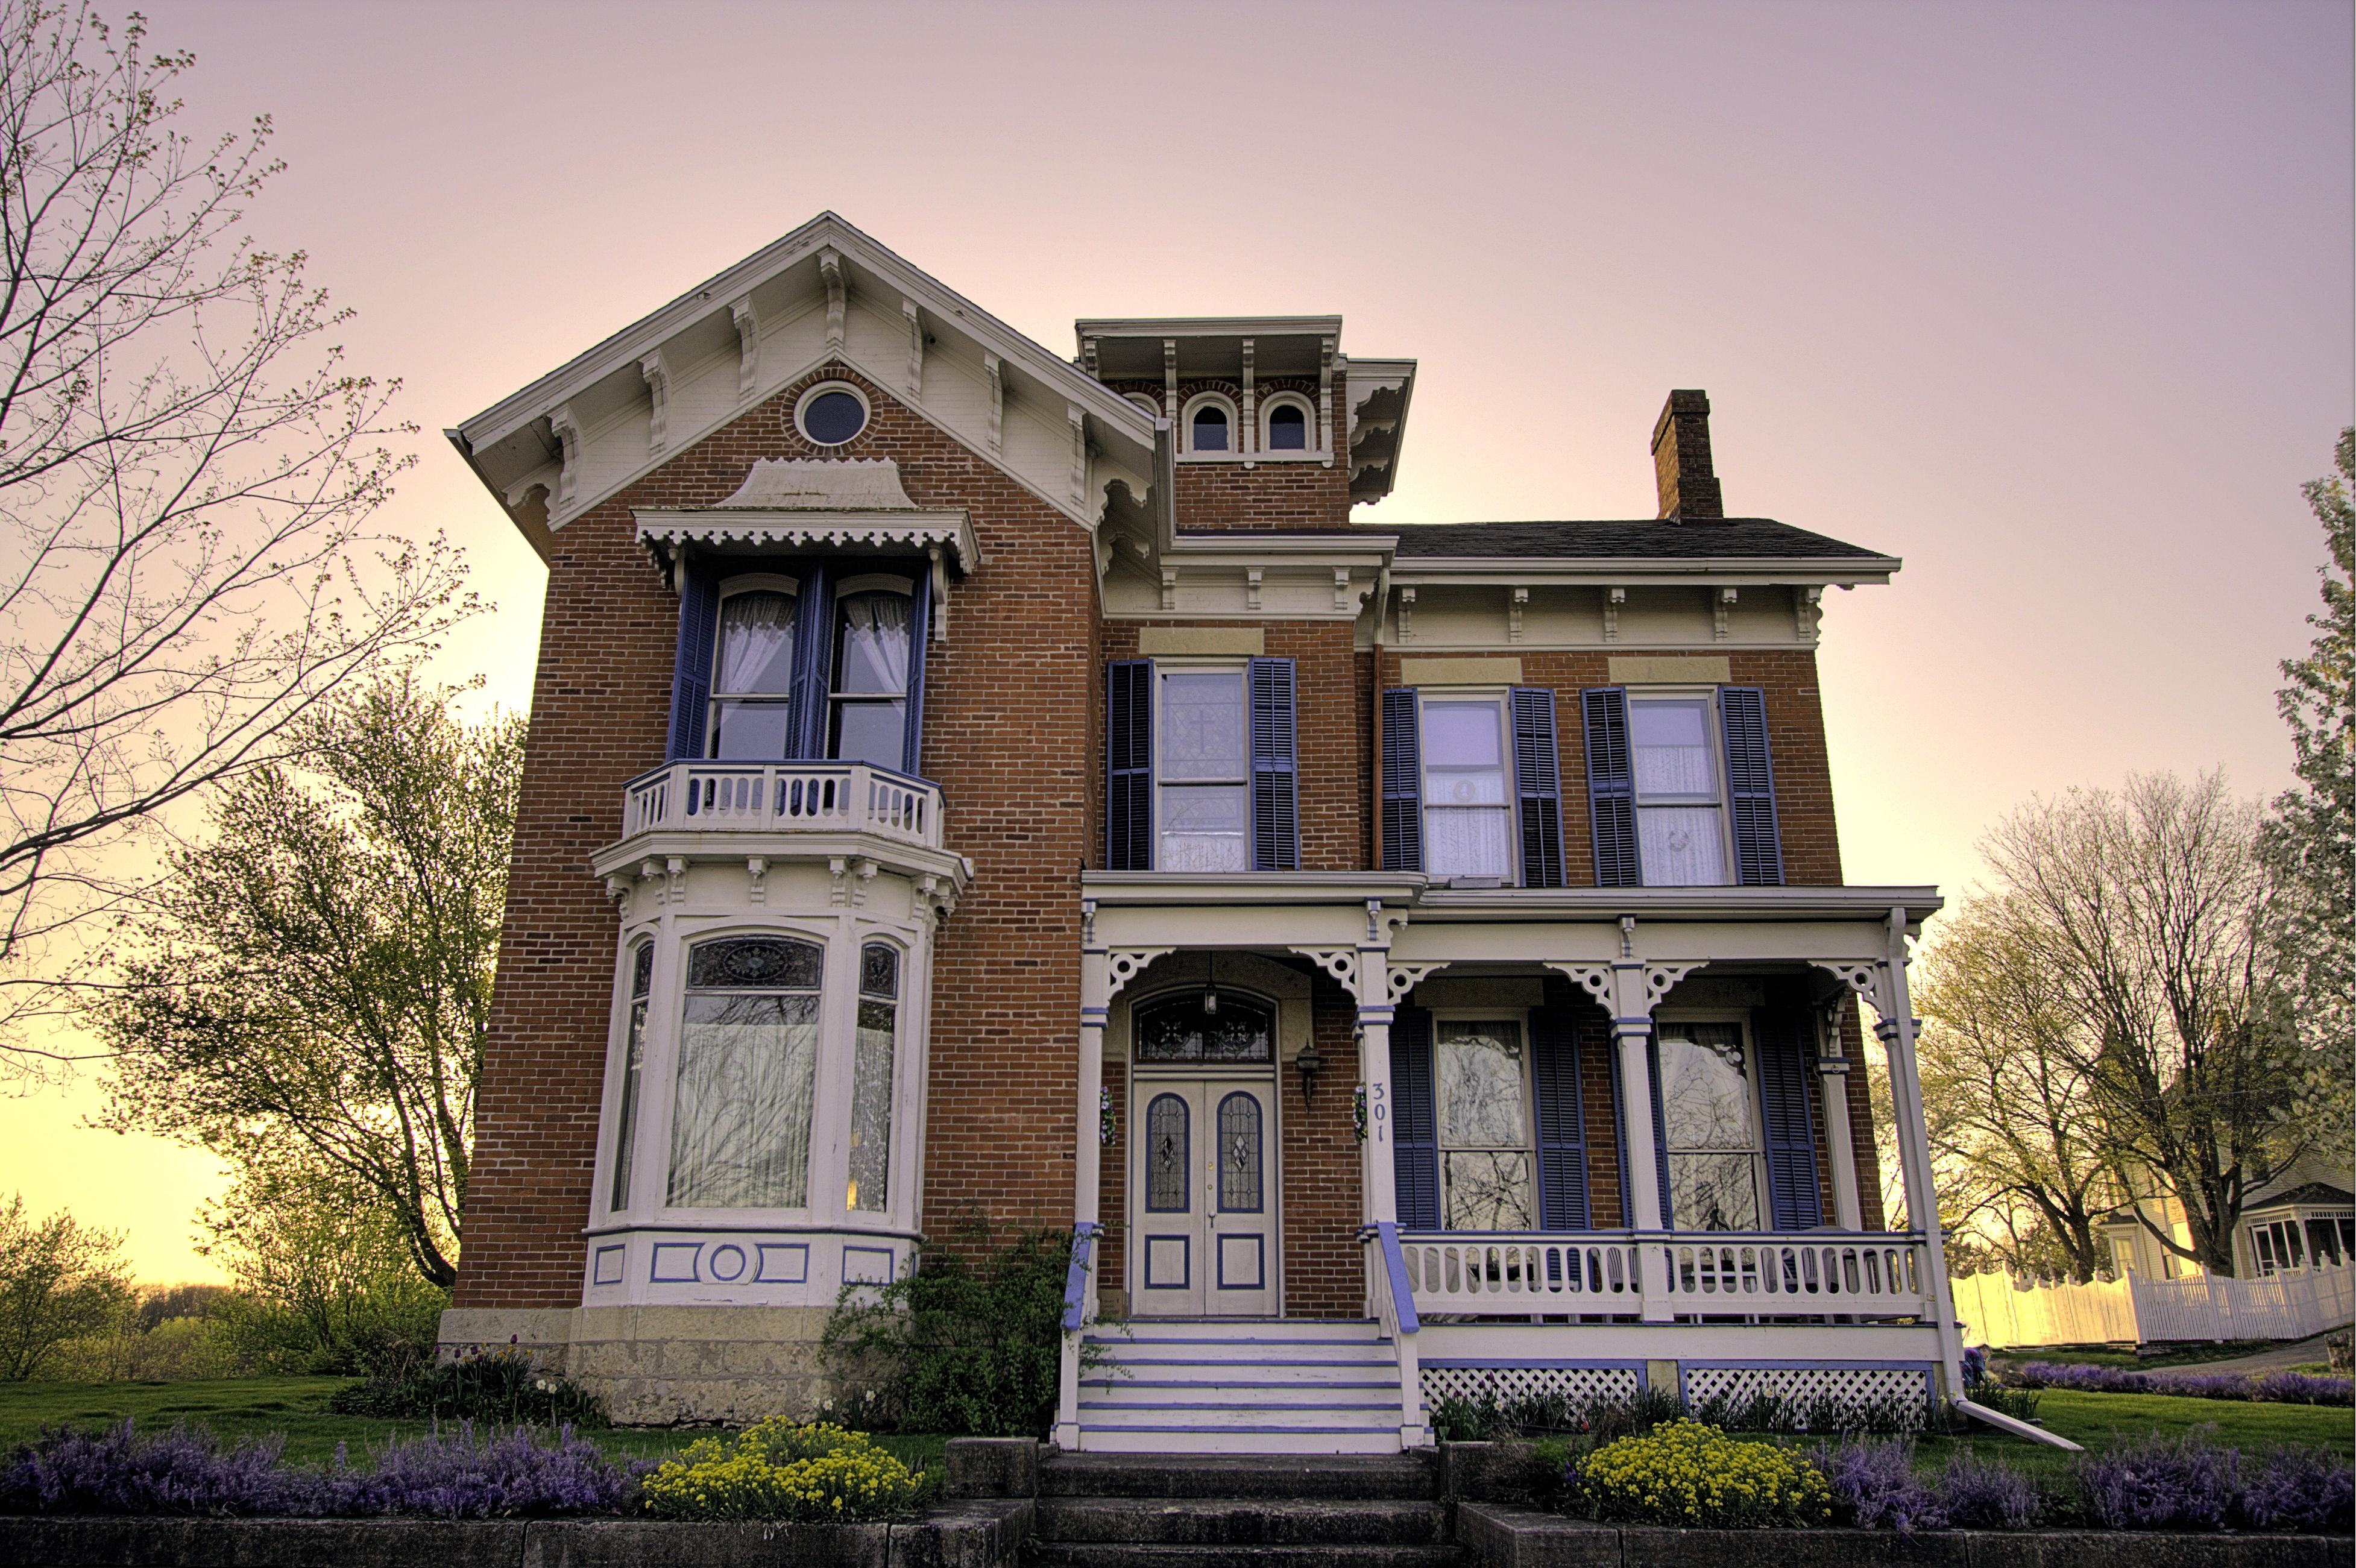 Victorian House in Downtown Area